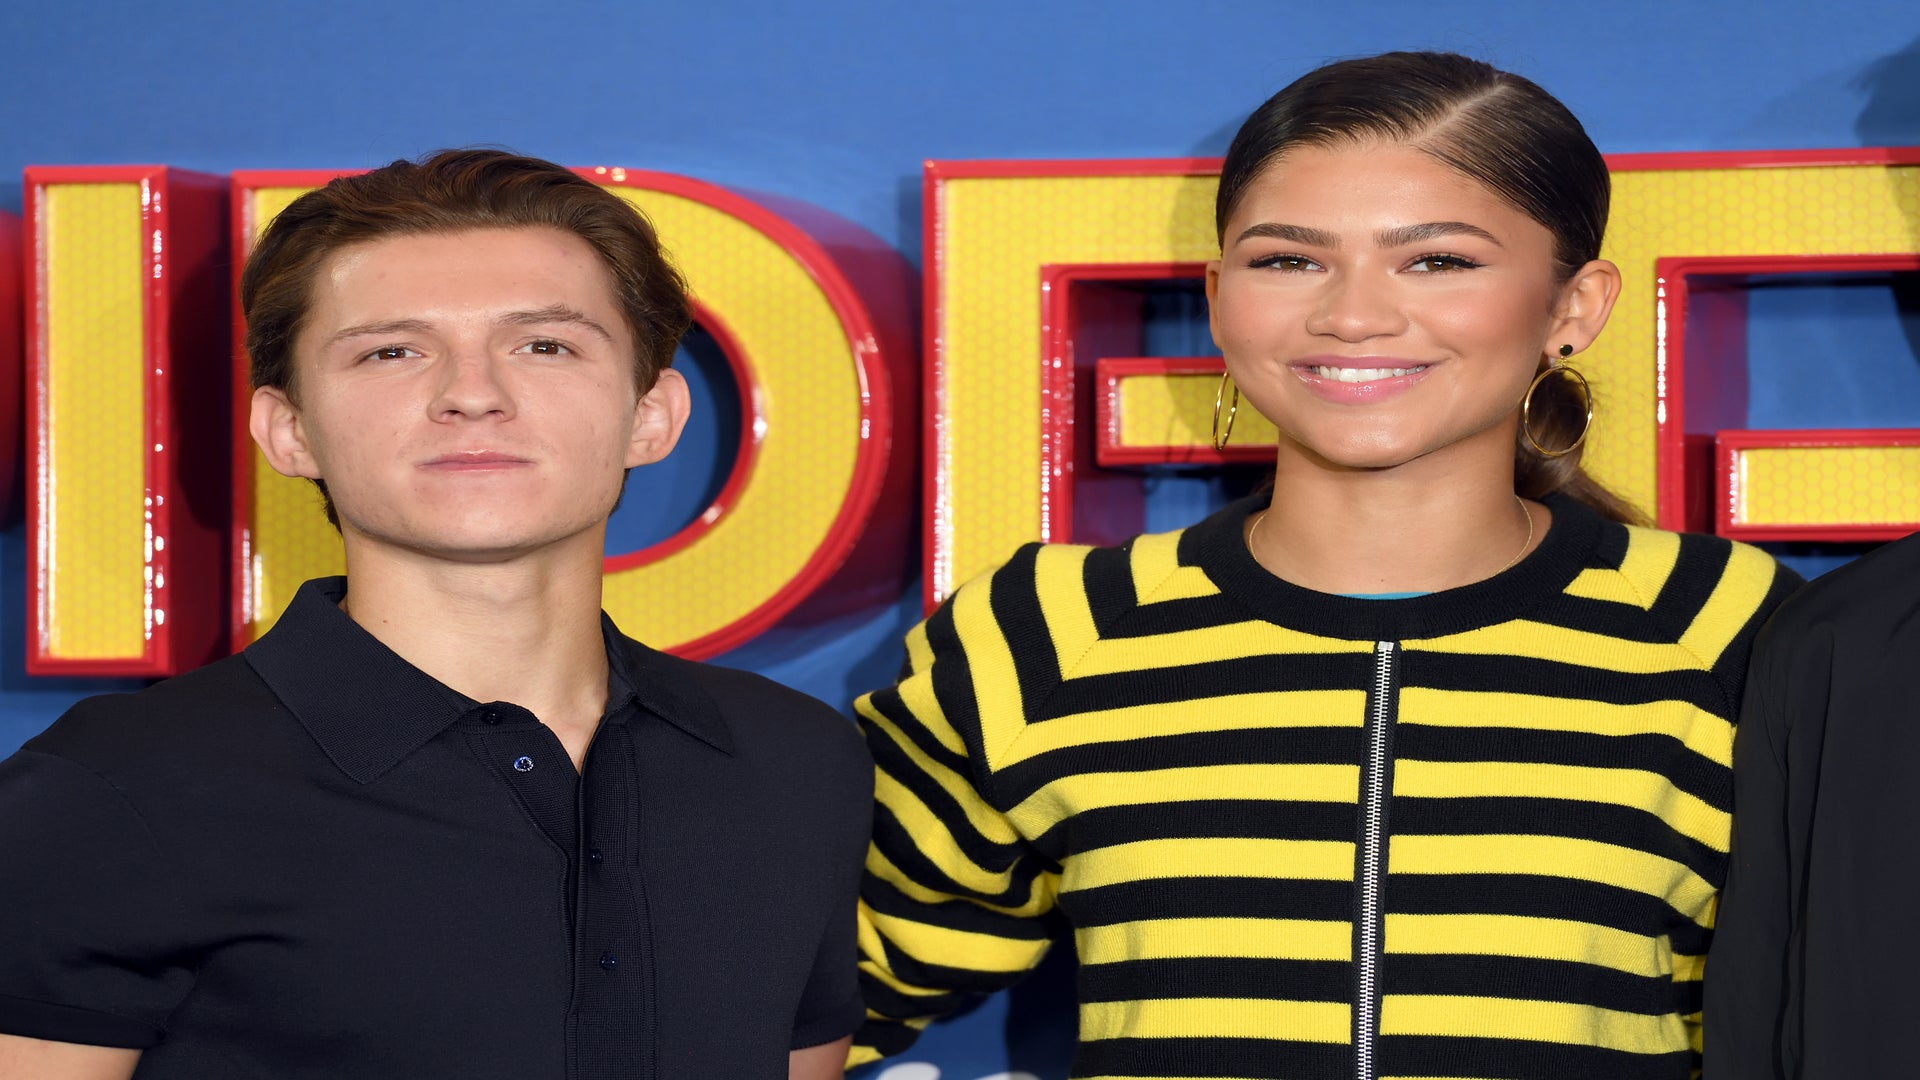 Nice Try Internet, Zendaya And 'Spider-Man: Homecoming' Co-Star Deny They're Dating